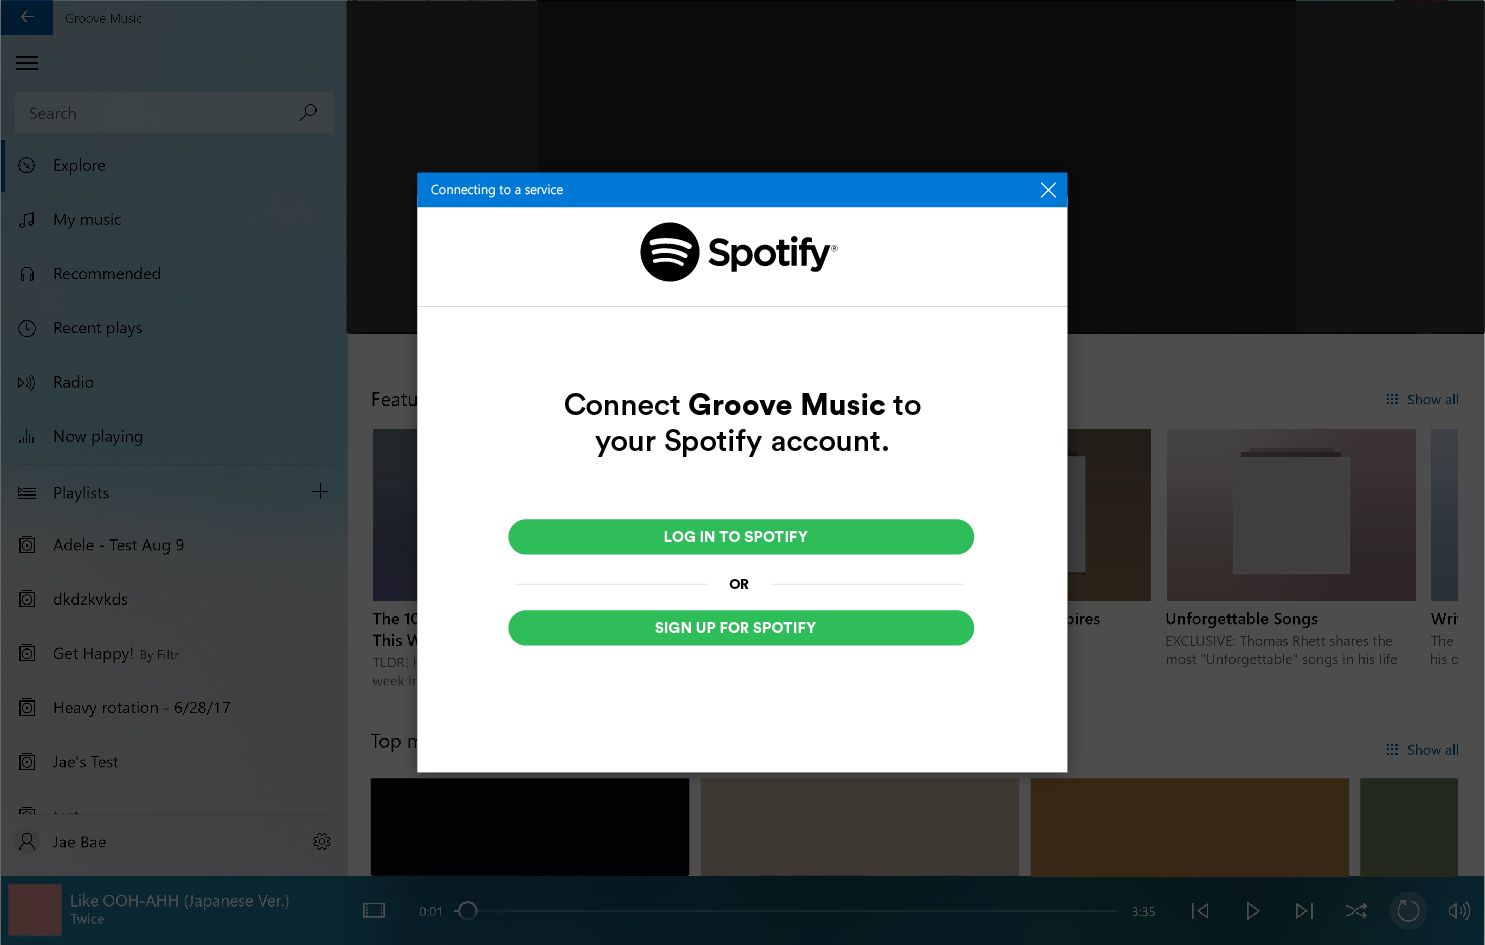 Prompt asking users to connect Groove Music to their Spotify account by signing into Spotify or creating a new Spotify account.